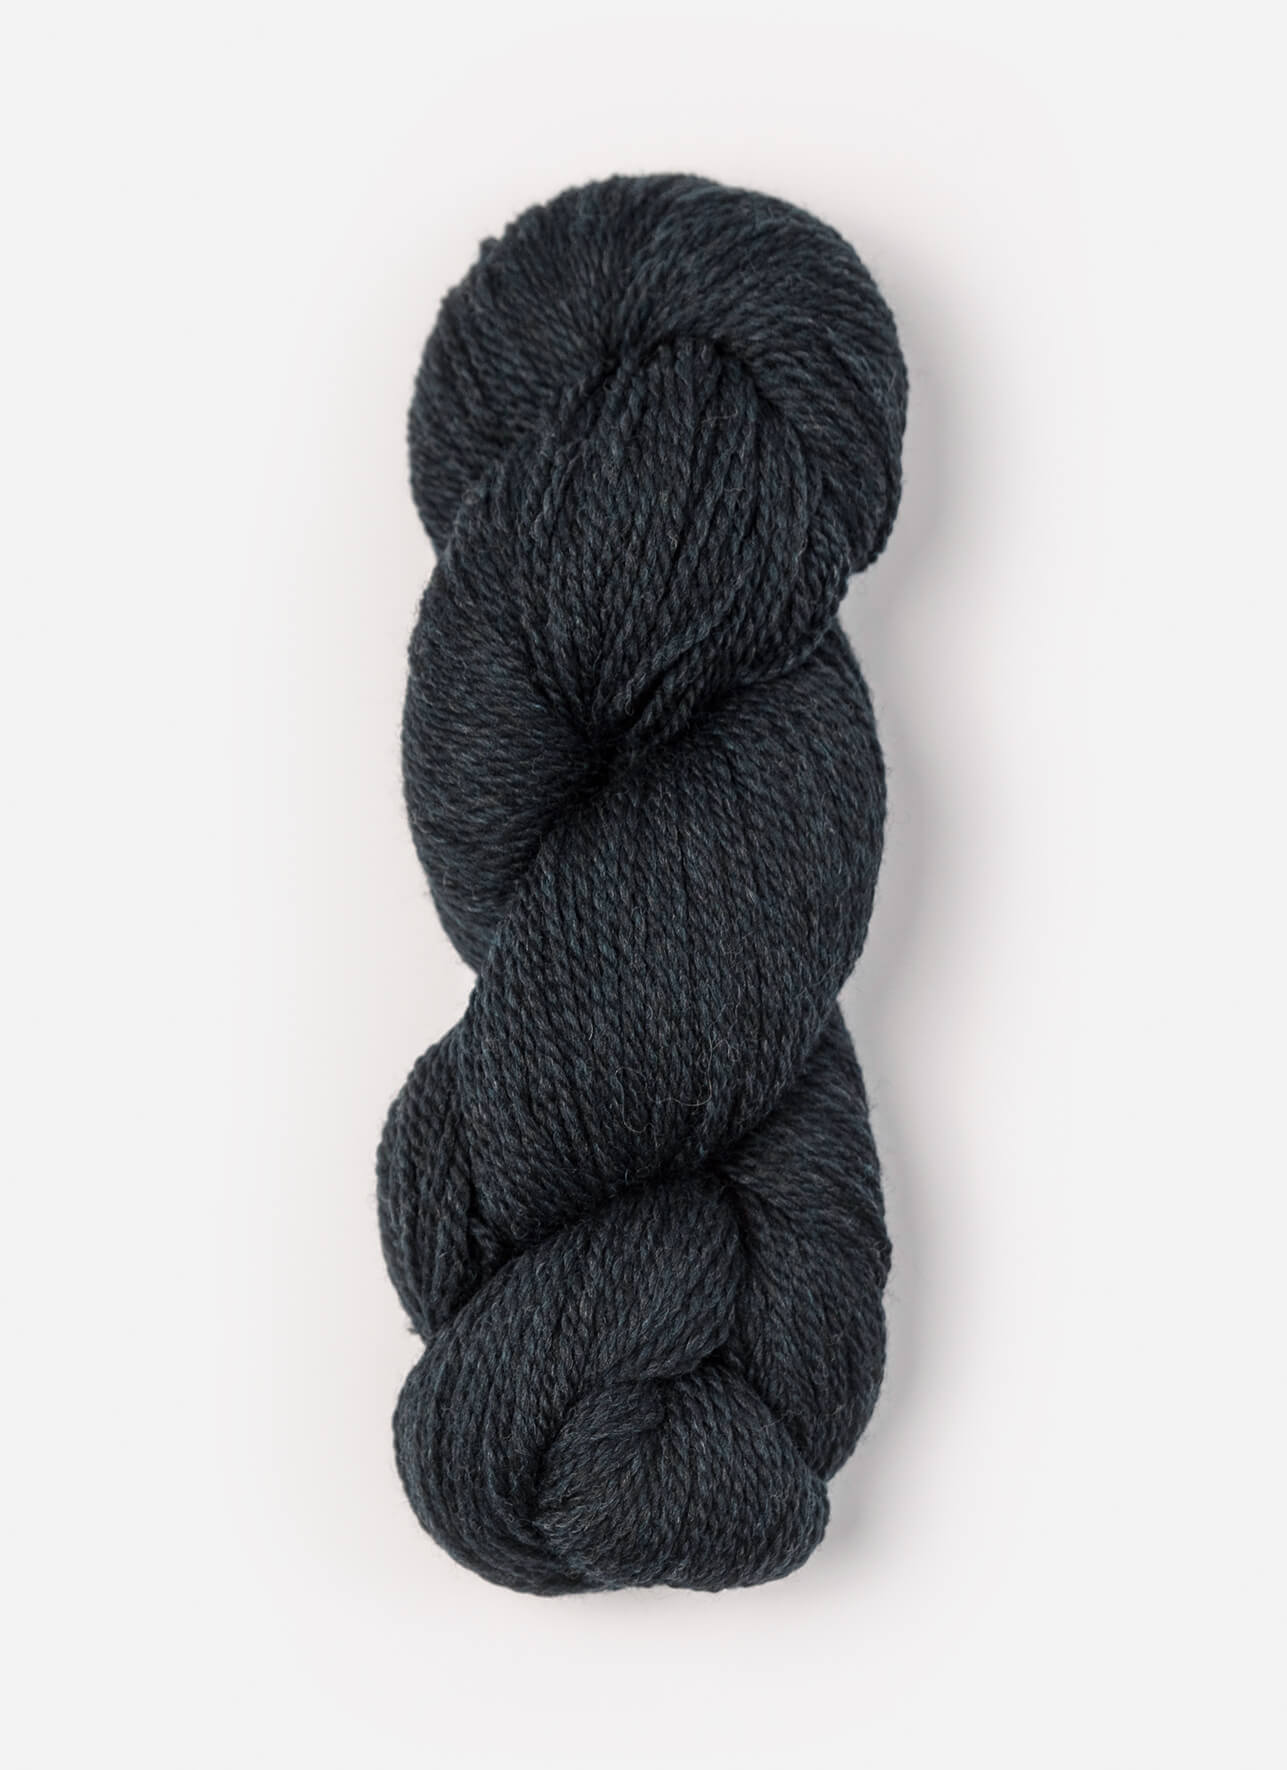 Blue Sky Fibers' Woolstok in 1317L - Midnight Sea